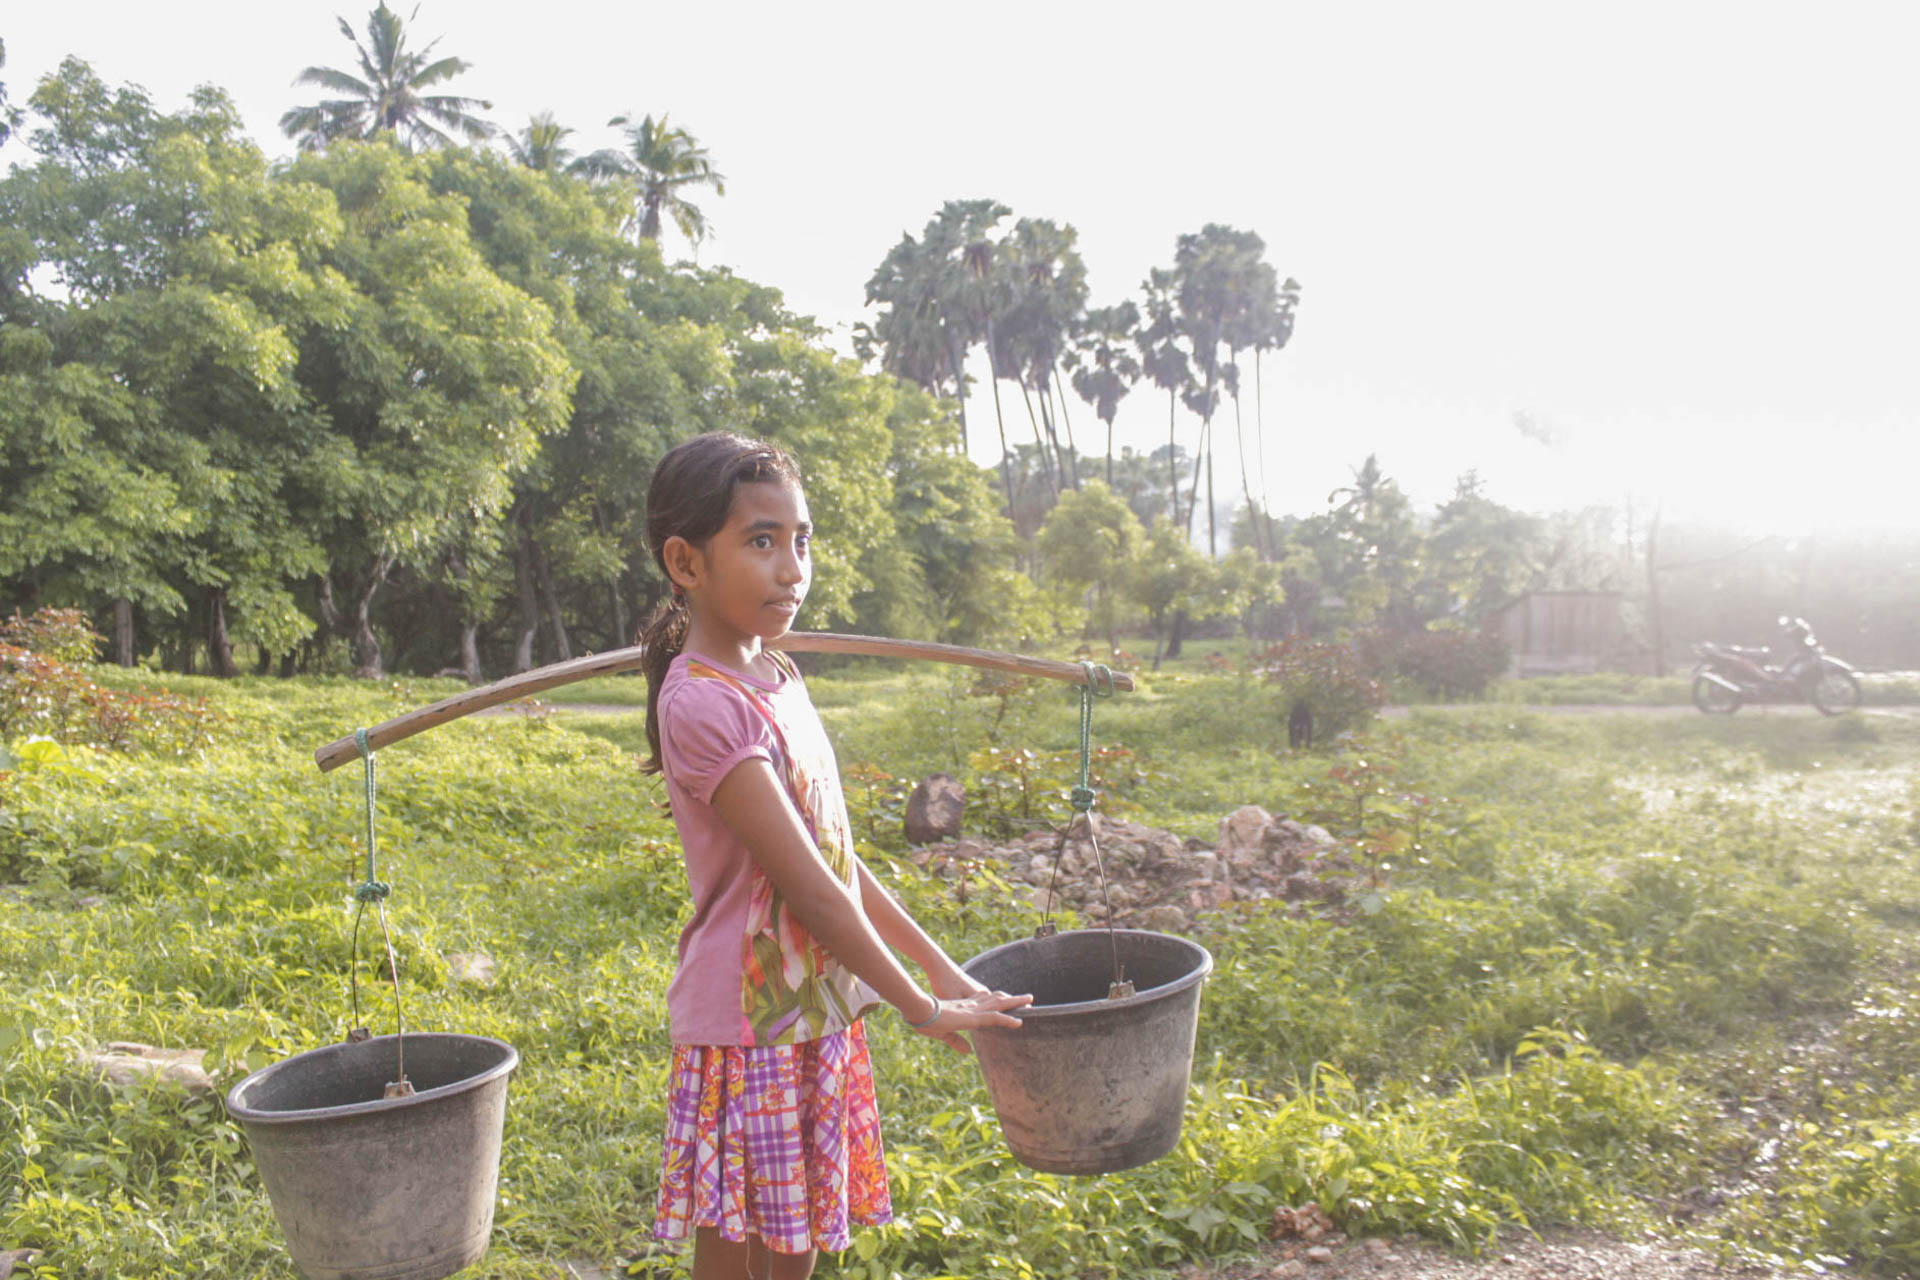 Yunita stands in a green field wearing a pink outfit and carrying a yoke with two water buckets balancing on her shoulder.